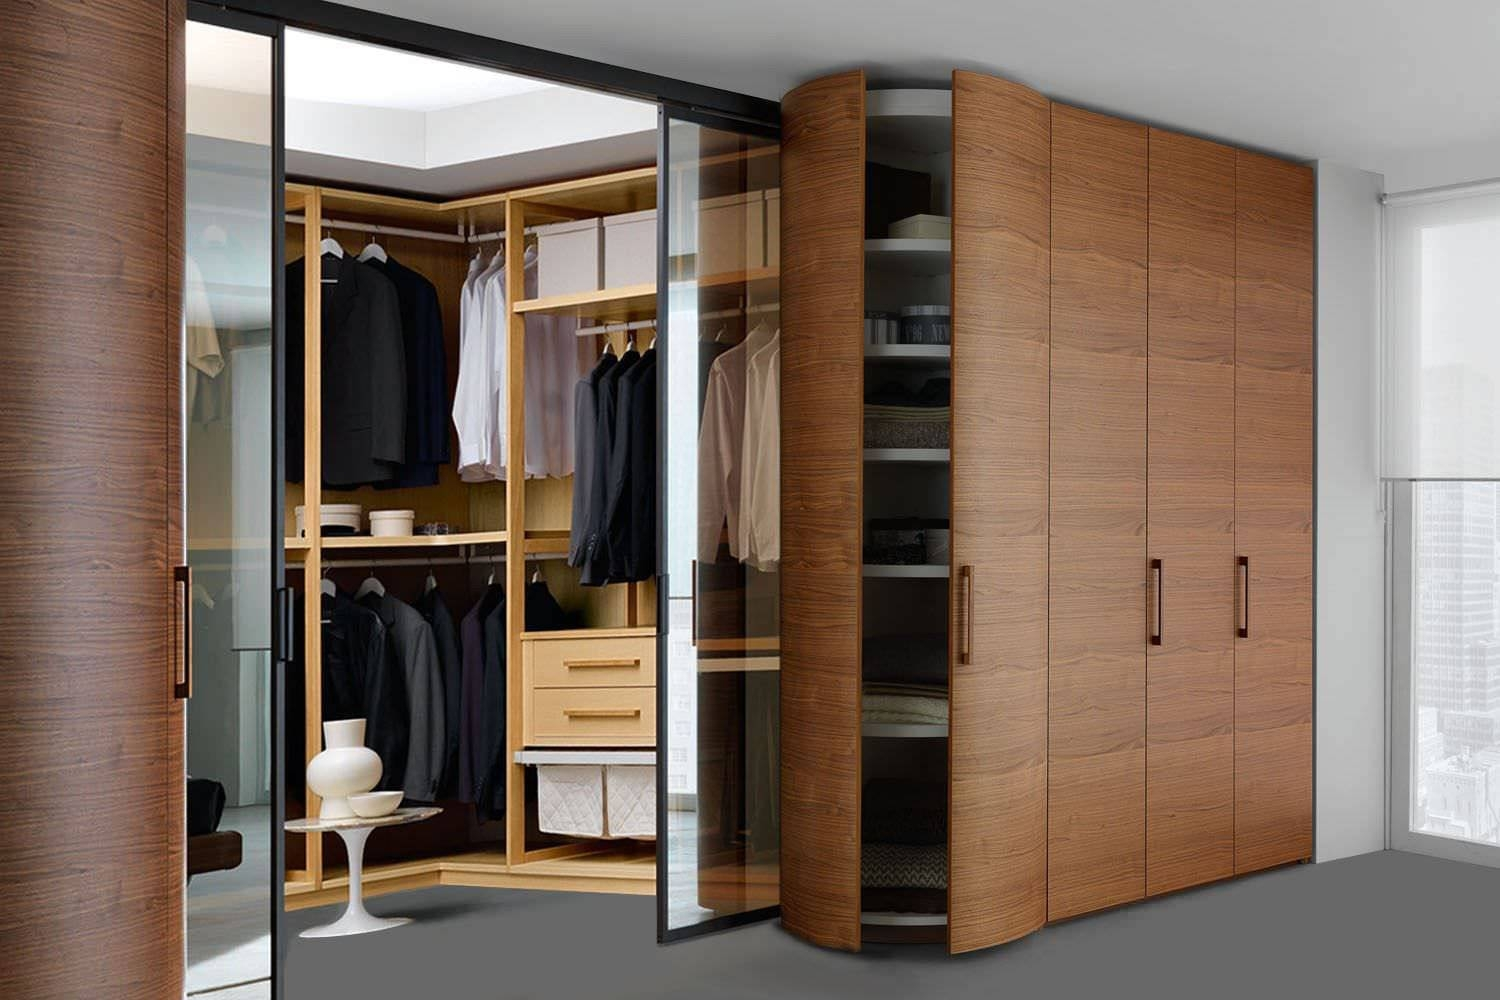 Corner Wardrobe / Contemporary / Wooden / Glossy Lacquered Wood inside Curved Corner Wardrobe Doors (Image 12 of 30)